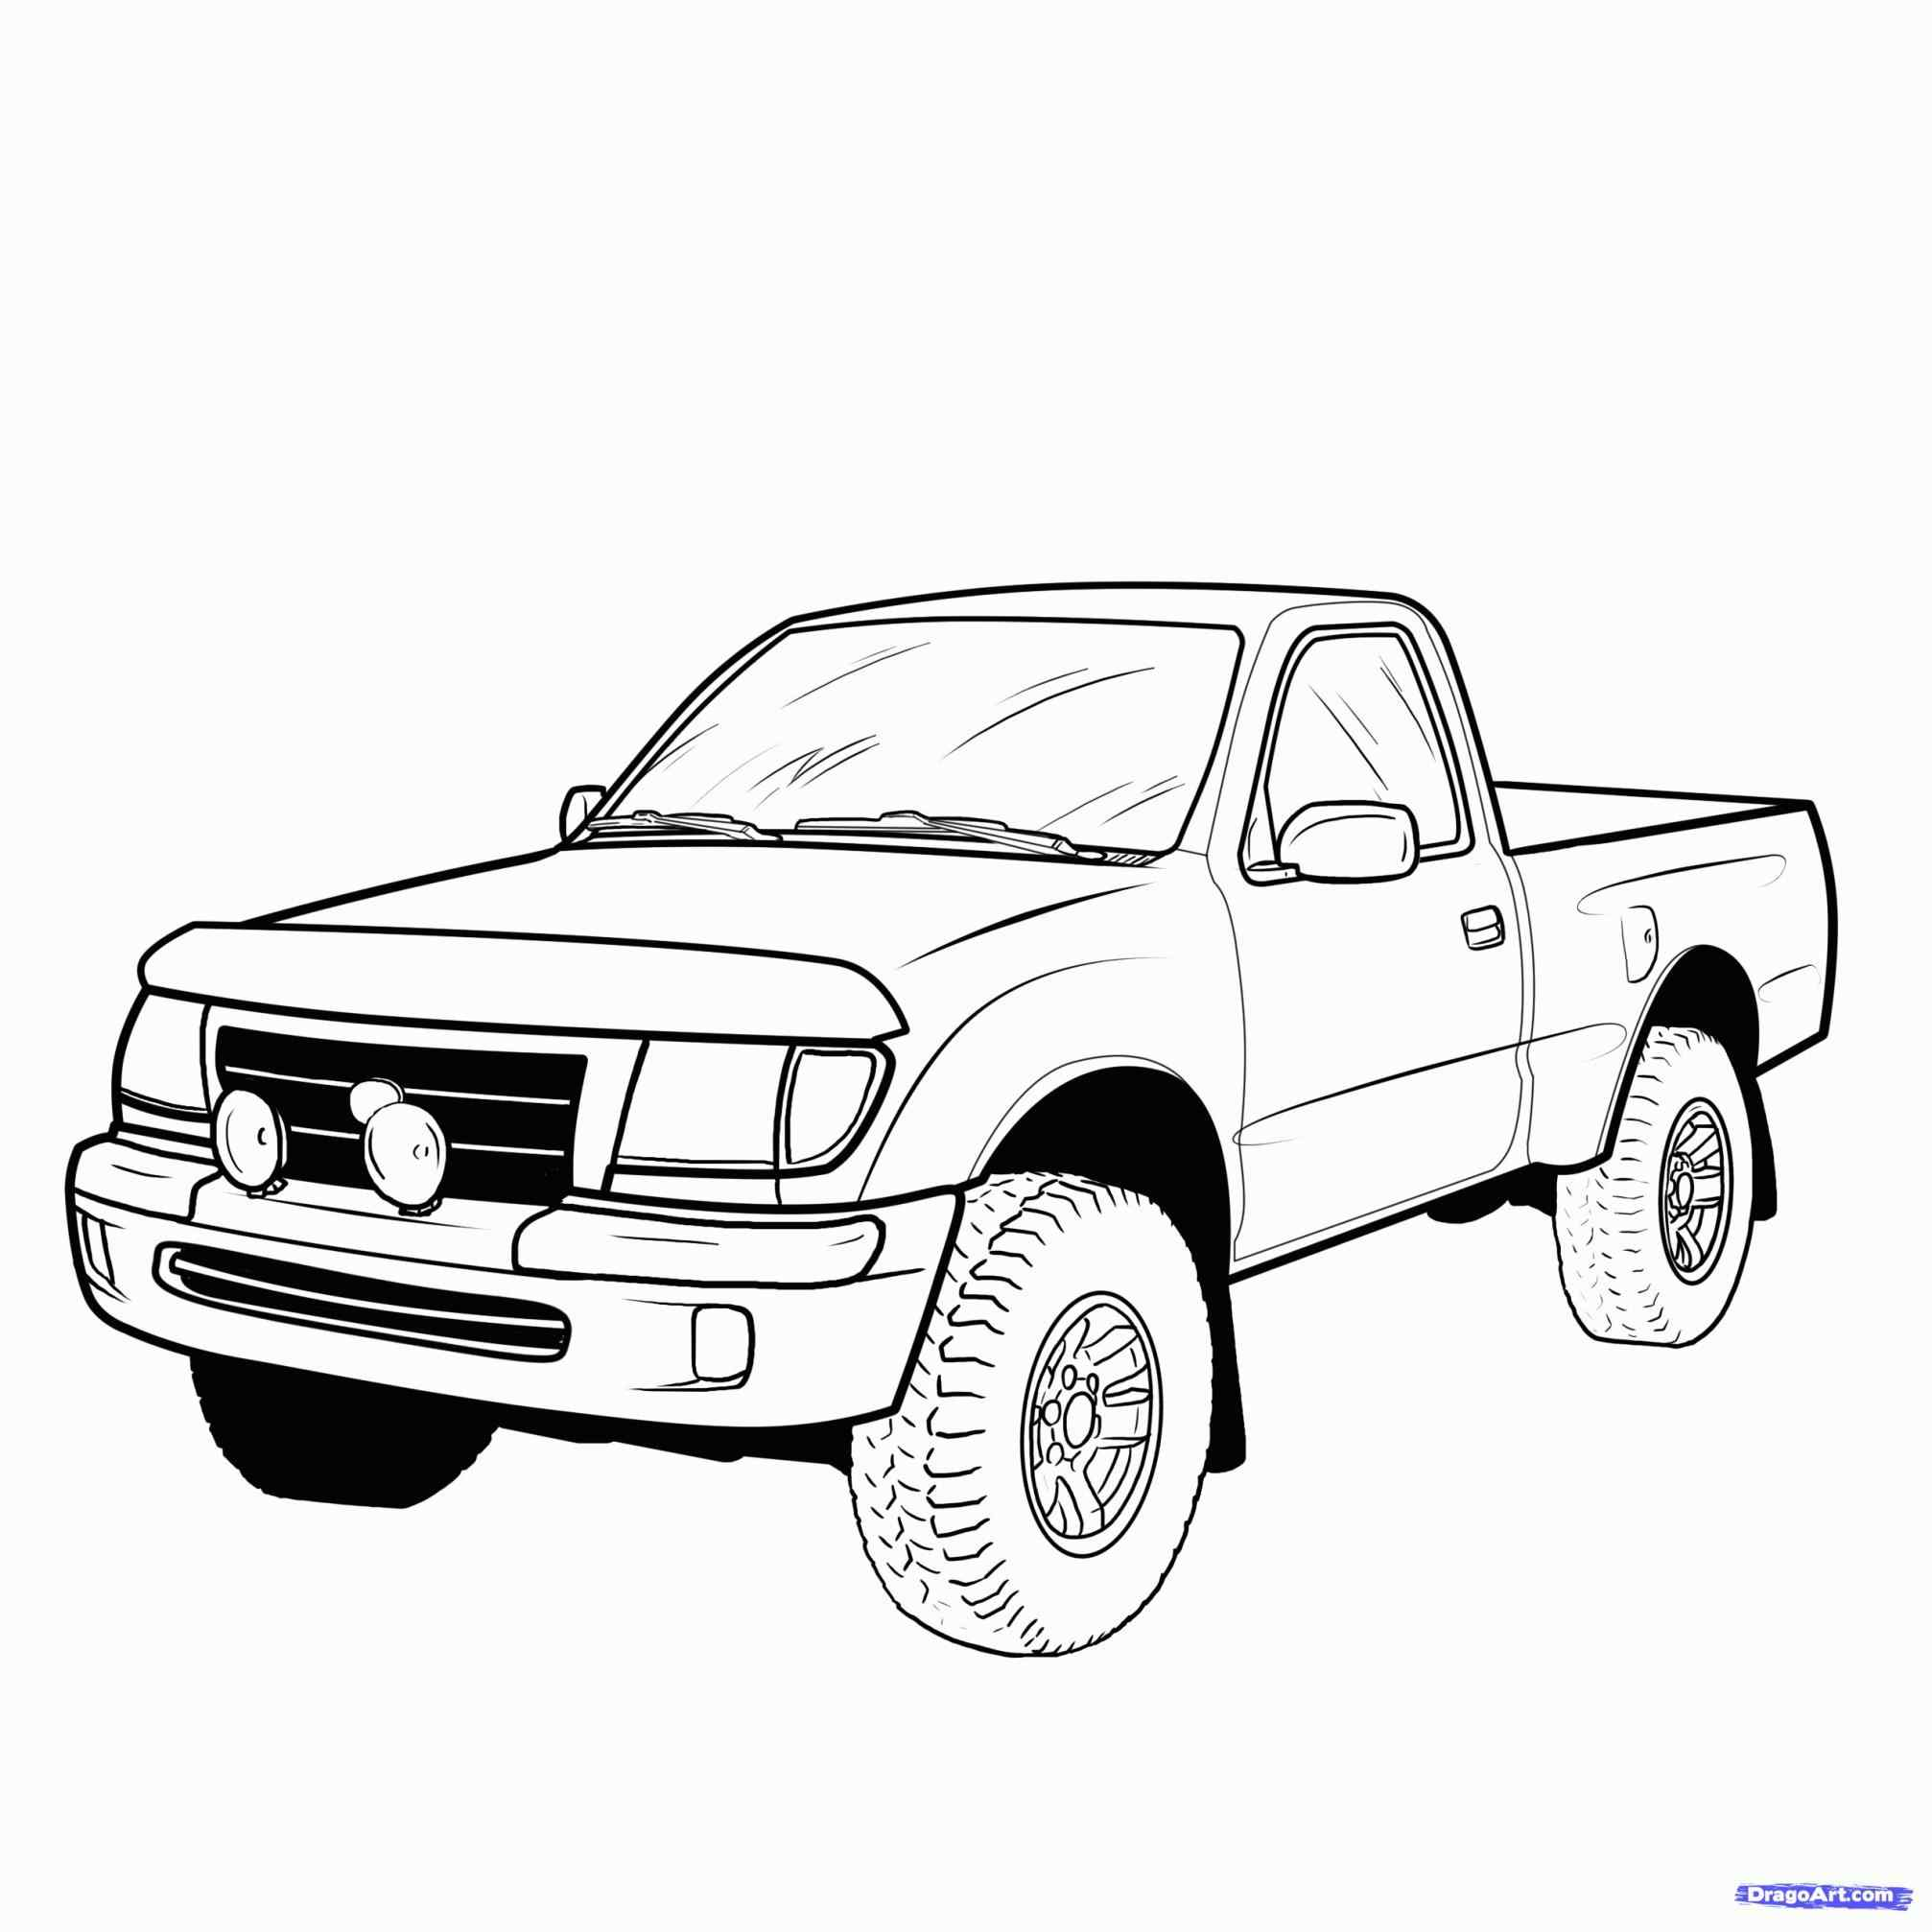 Diesel Truck Drawings at PaintingValley.com.